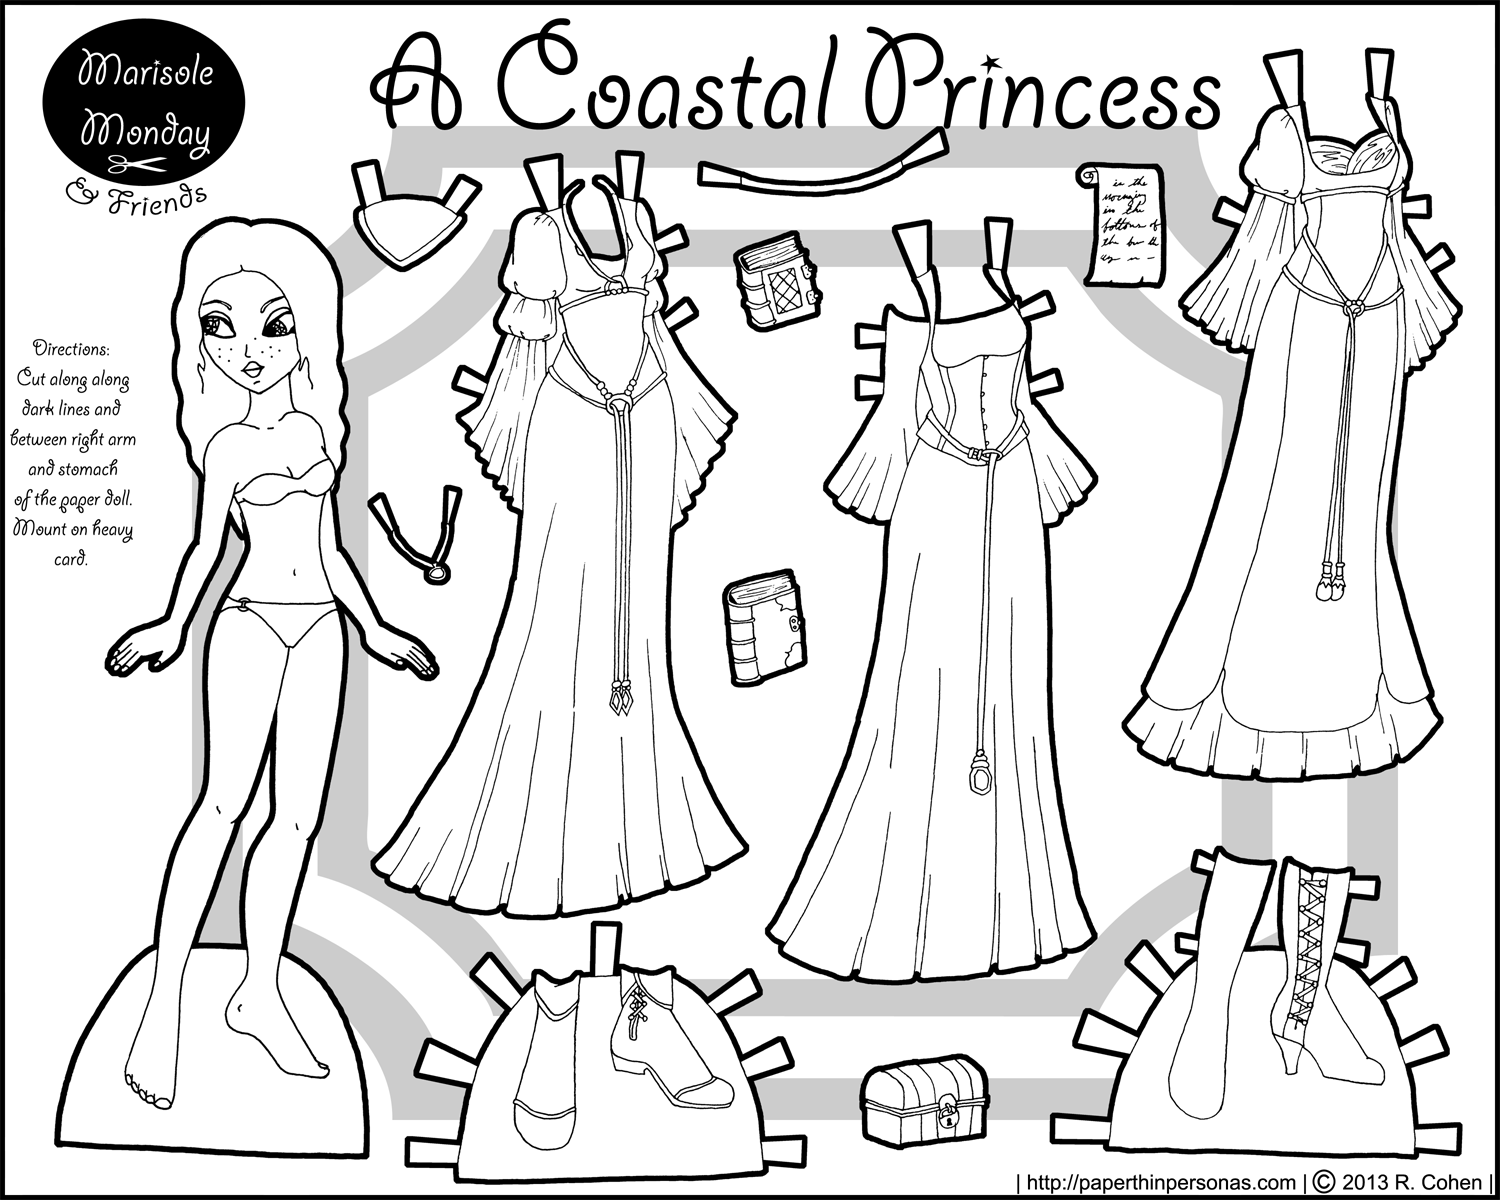 marisole monday coastal princess dolls printable paper and